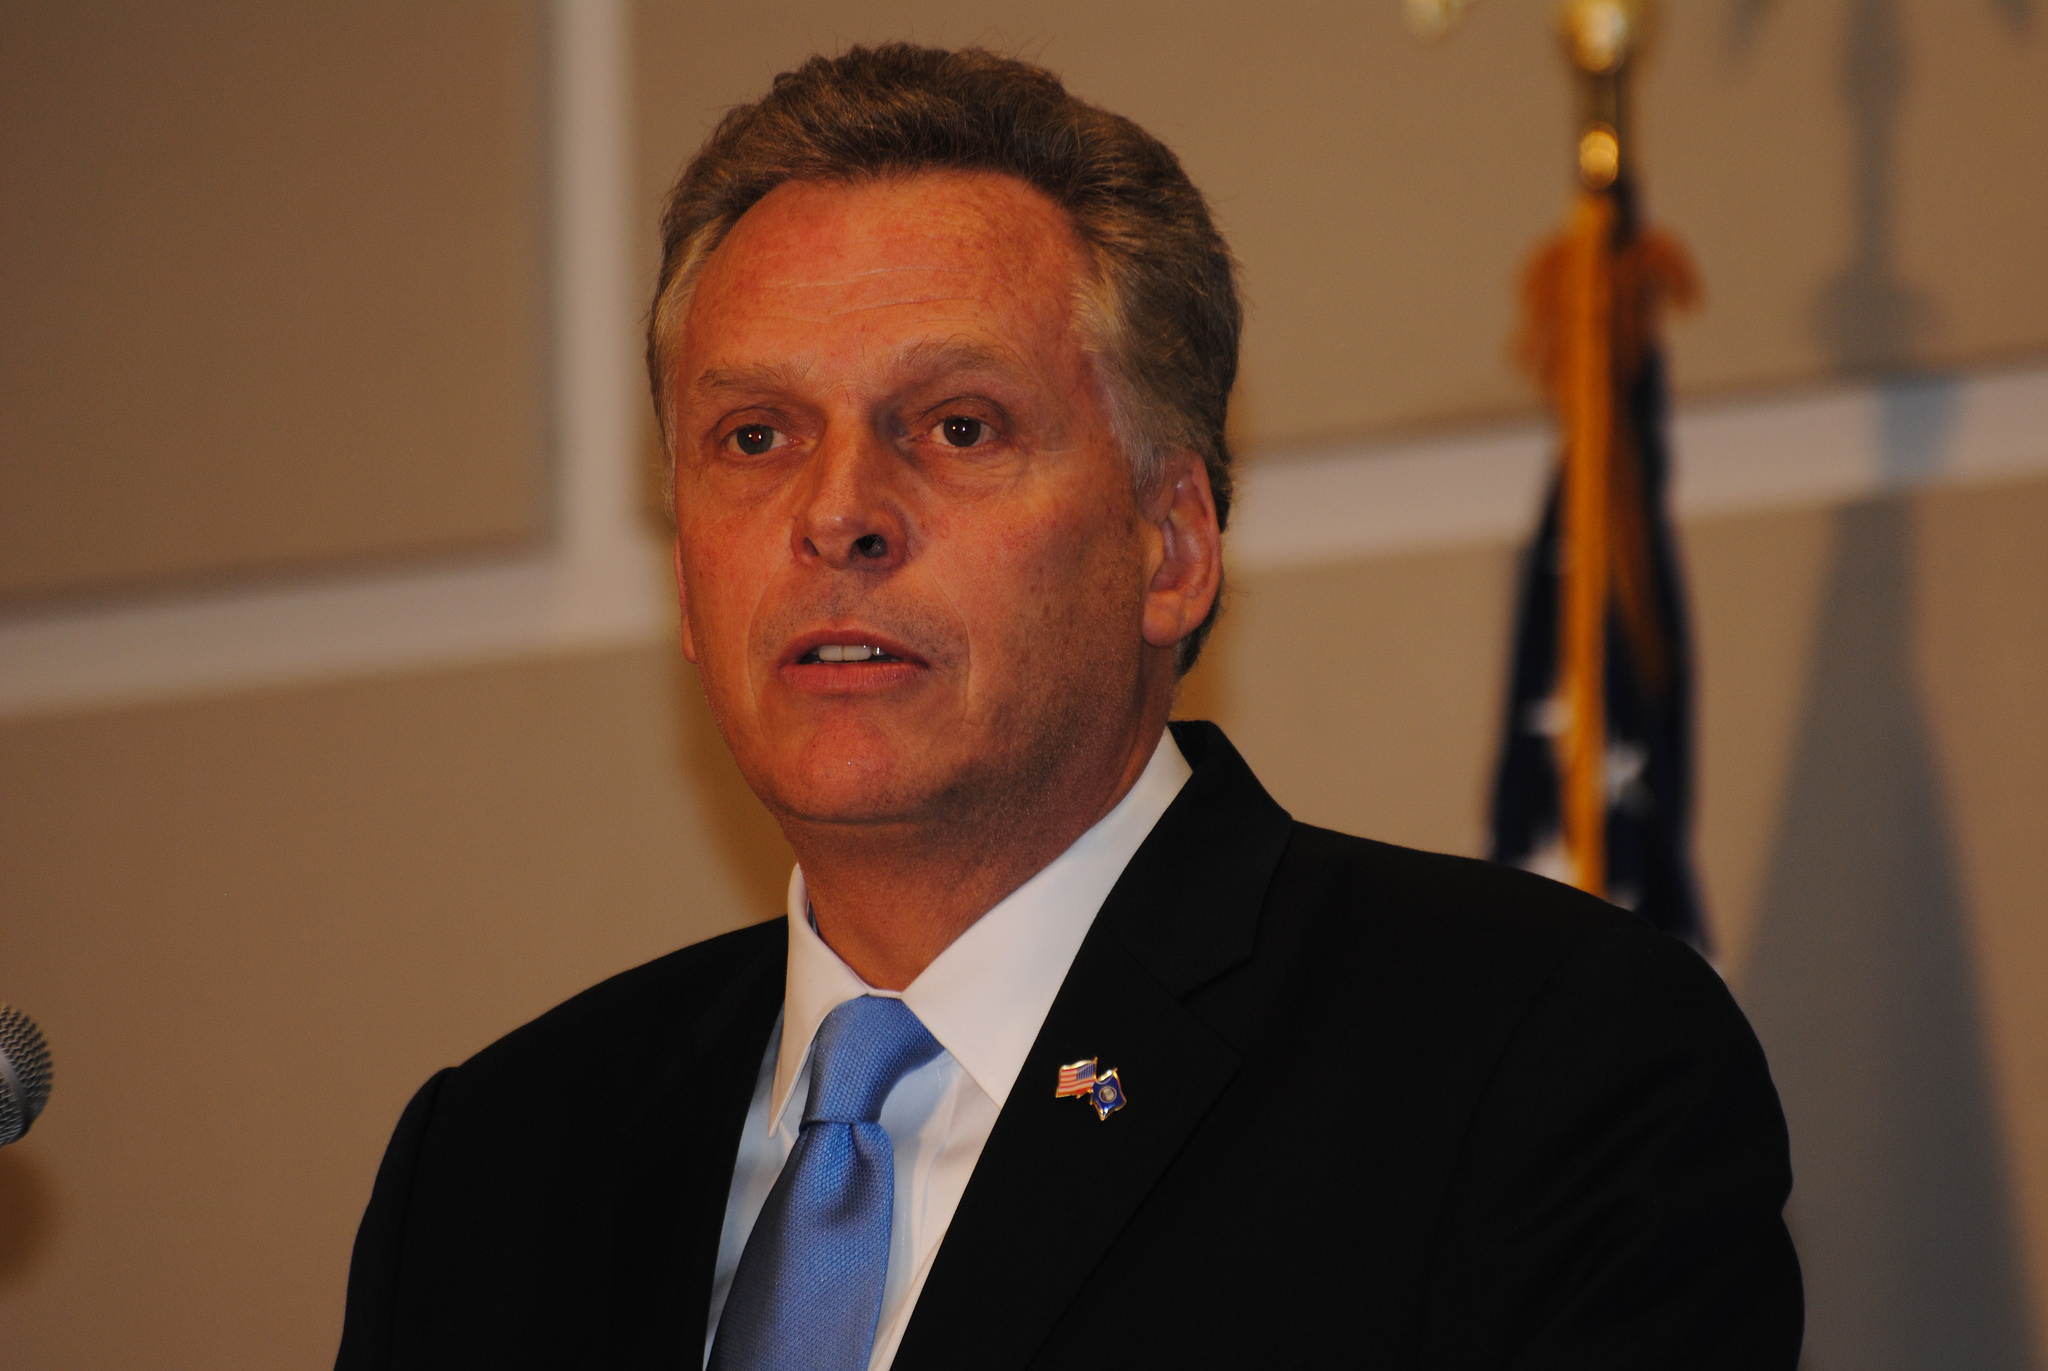 McAuliffe says he'd punch Trump if he 'got in my space'